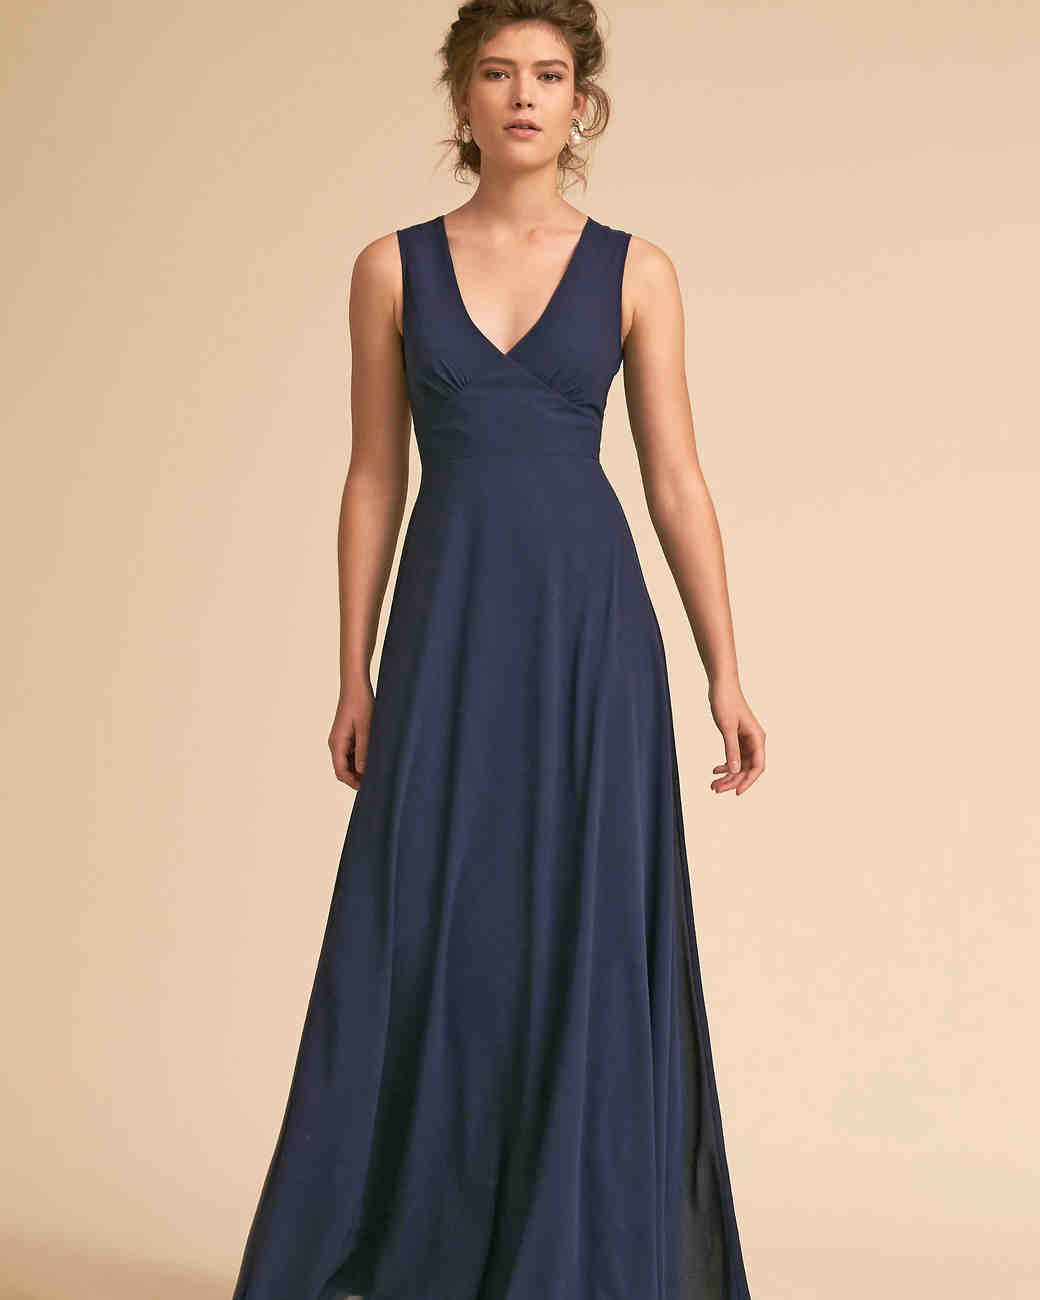 918220ef948 35 Navy Dresses for Classic Mothers of the Bride and Groom